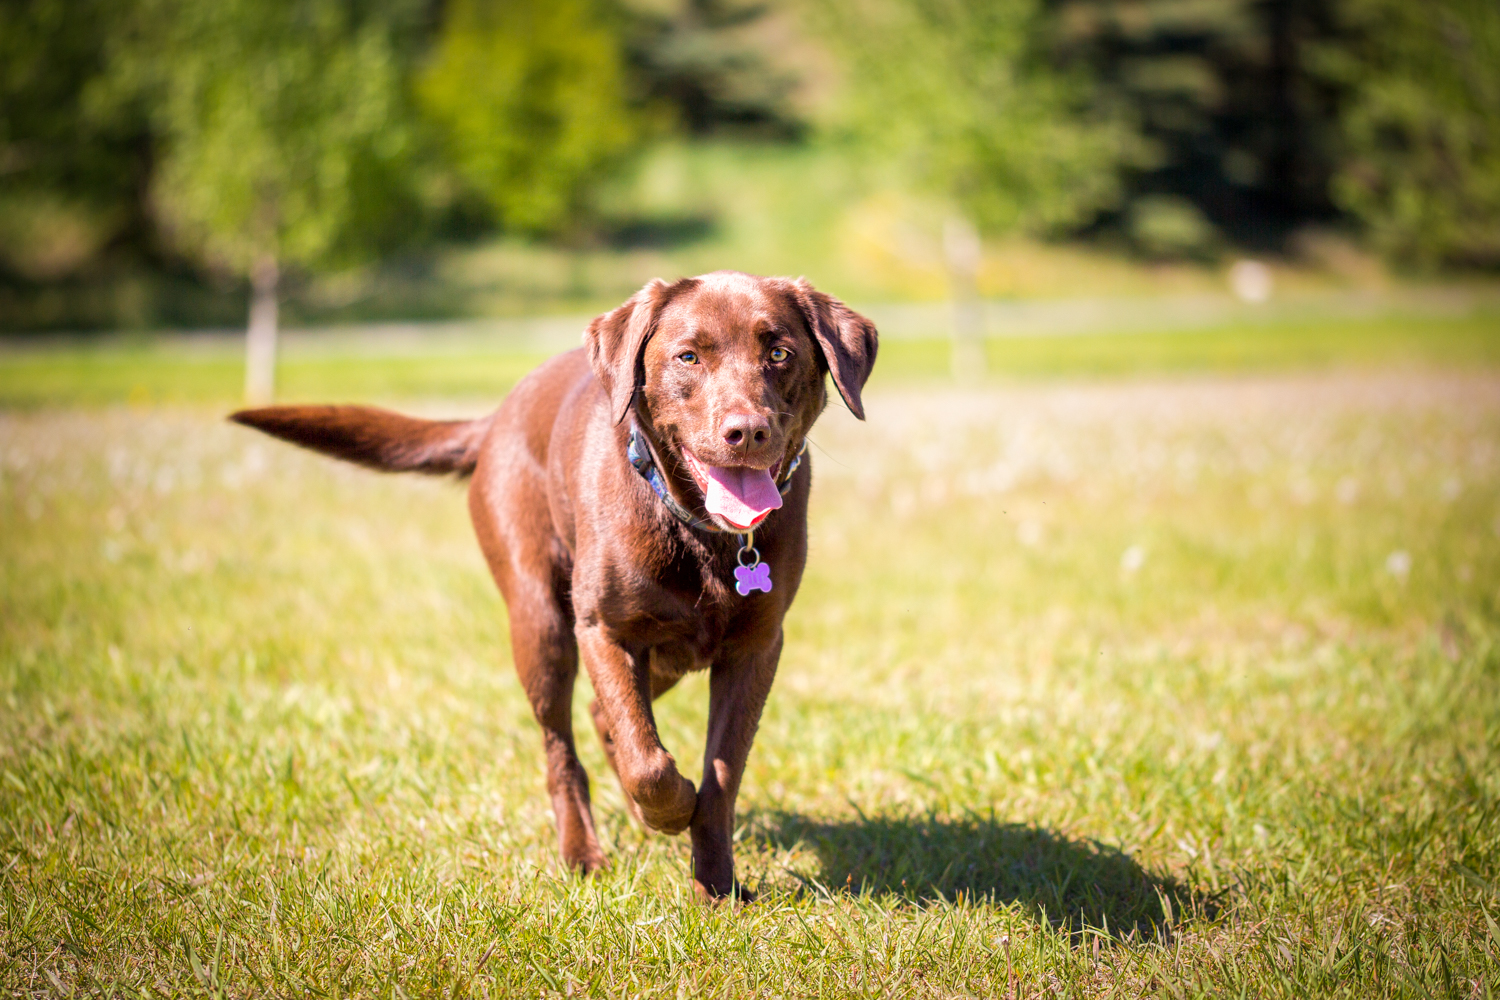 The_Dog_with_a_Bow_Photography_Cochrane_Humane_Mutt_Strut-8.jpg